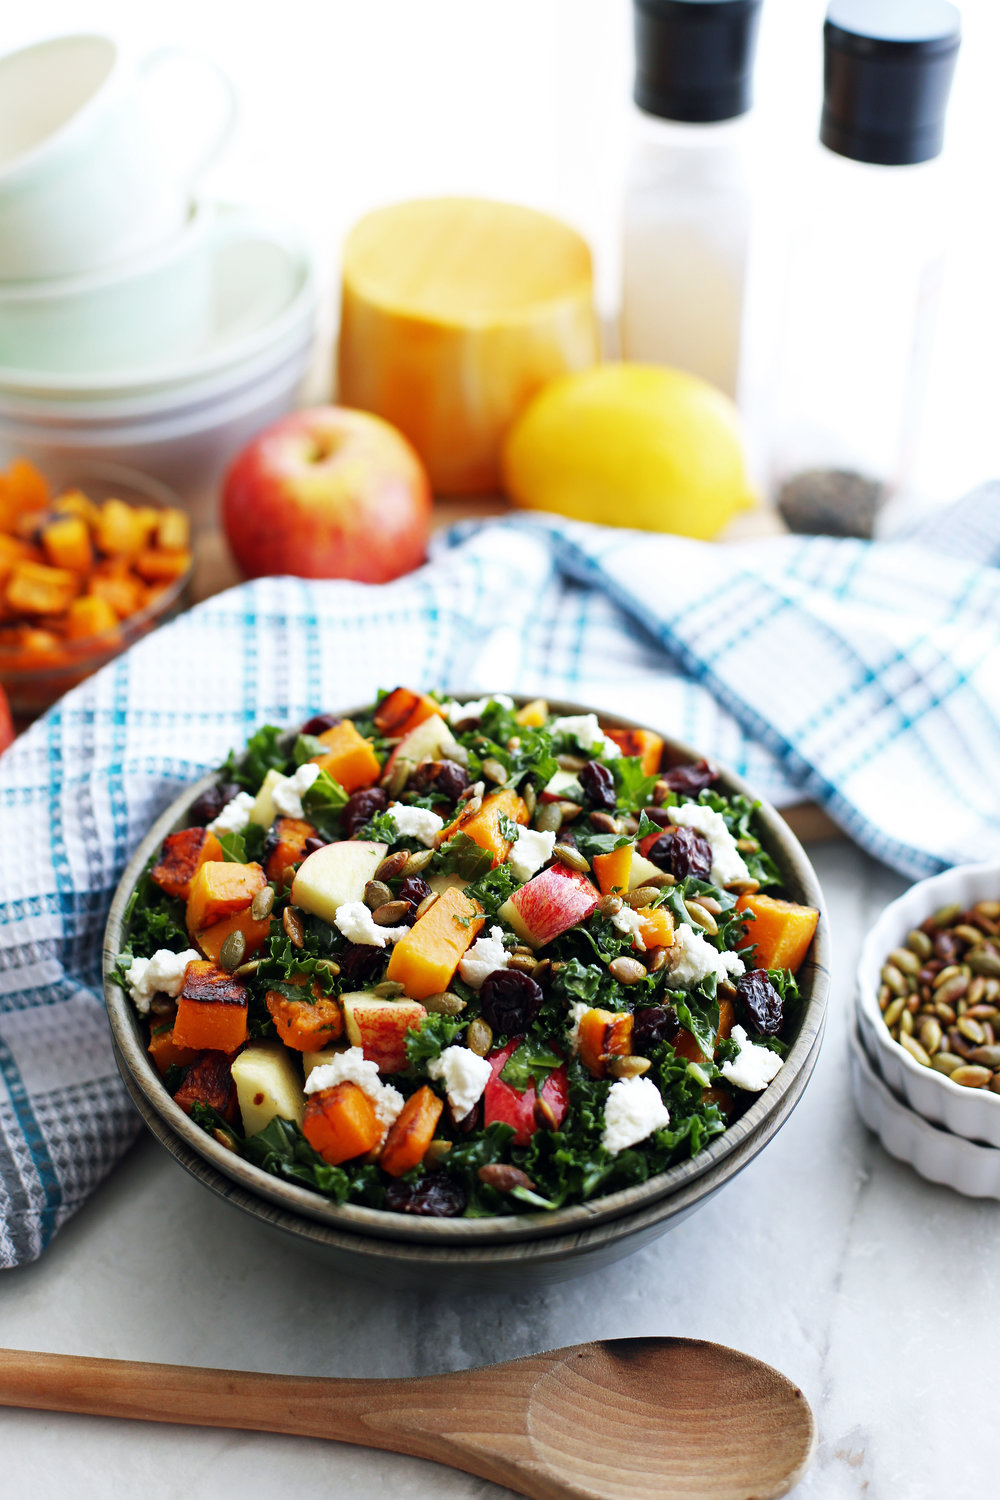 Bowl of kale salad with roasted butternut squash, apple, goat cheese, pumpkin seeds, and dried cherries.